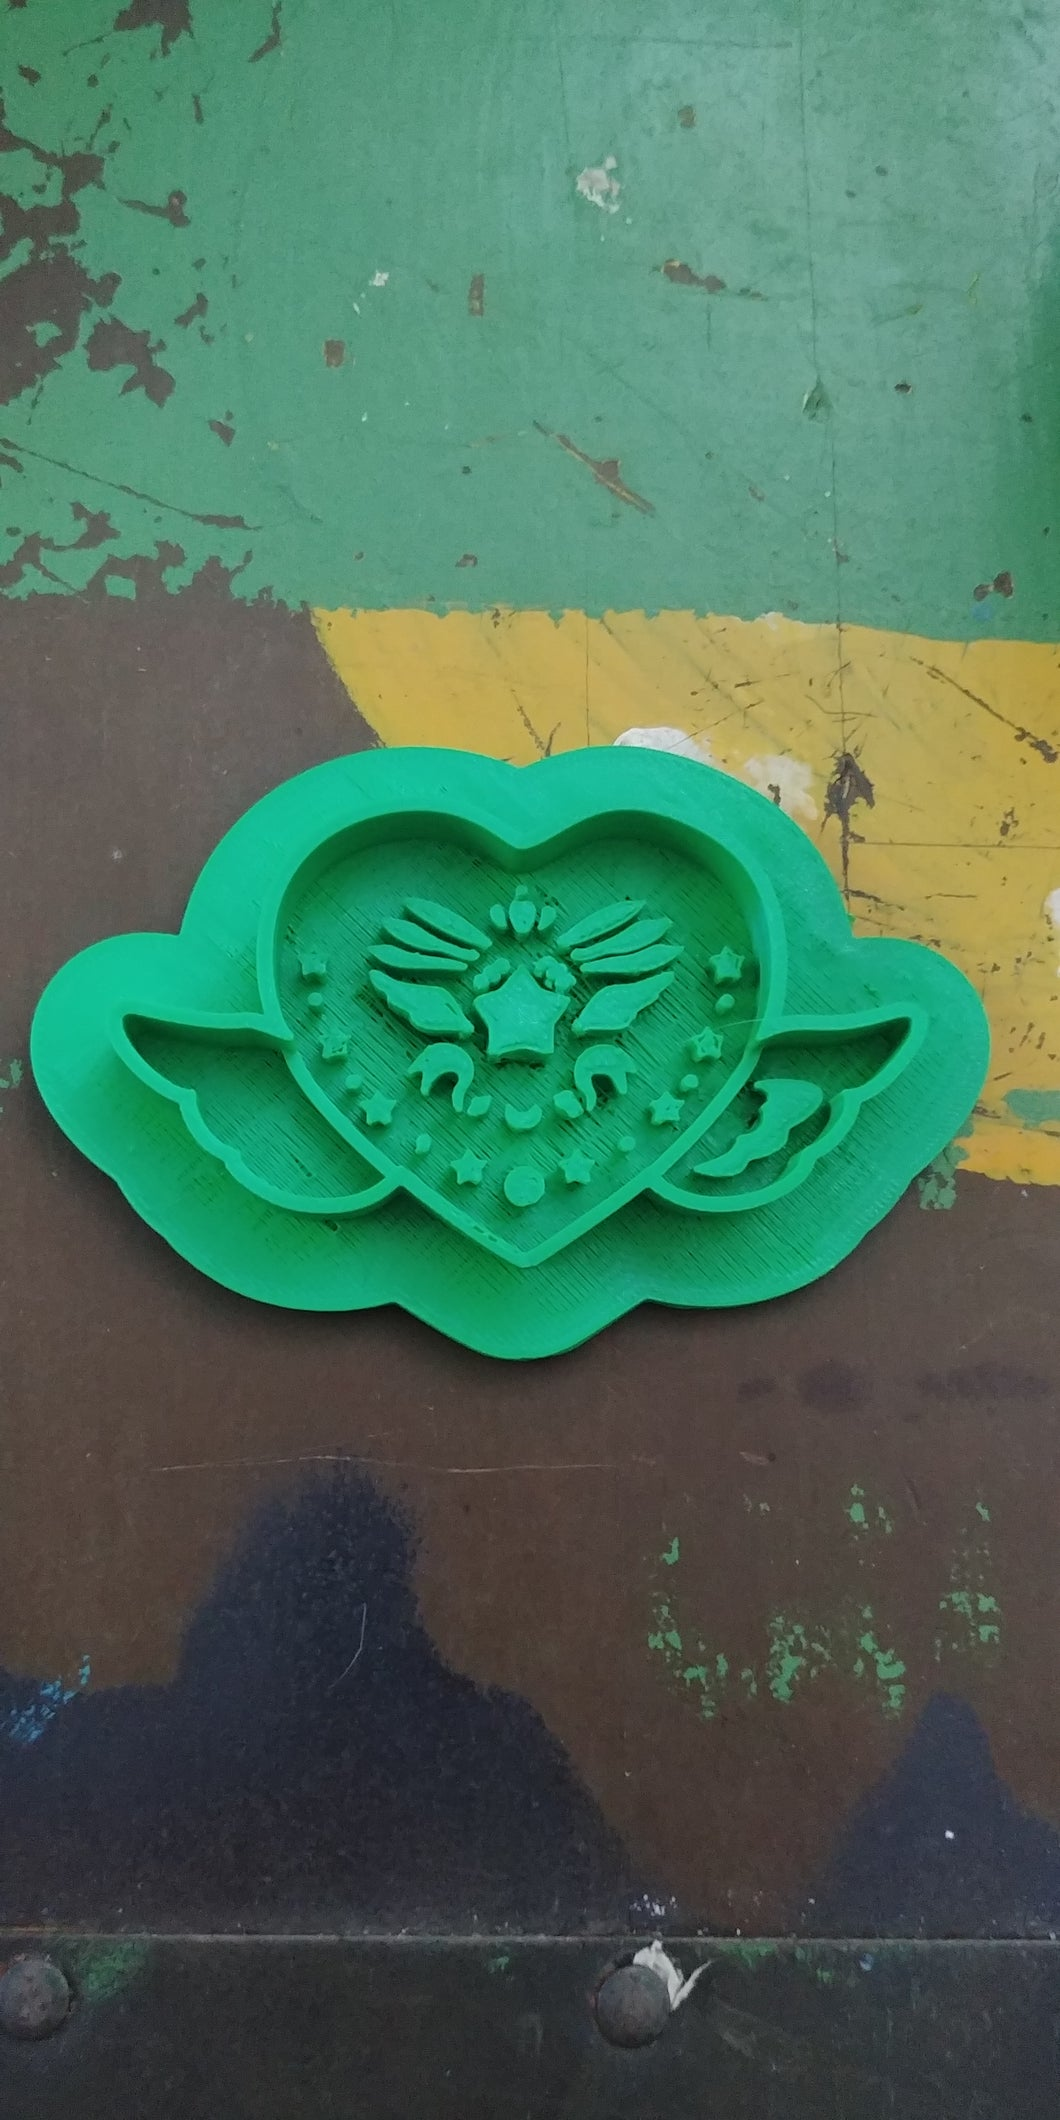 3D Printed Cookie Cutter Inspired by Sailor Moon